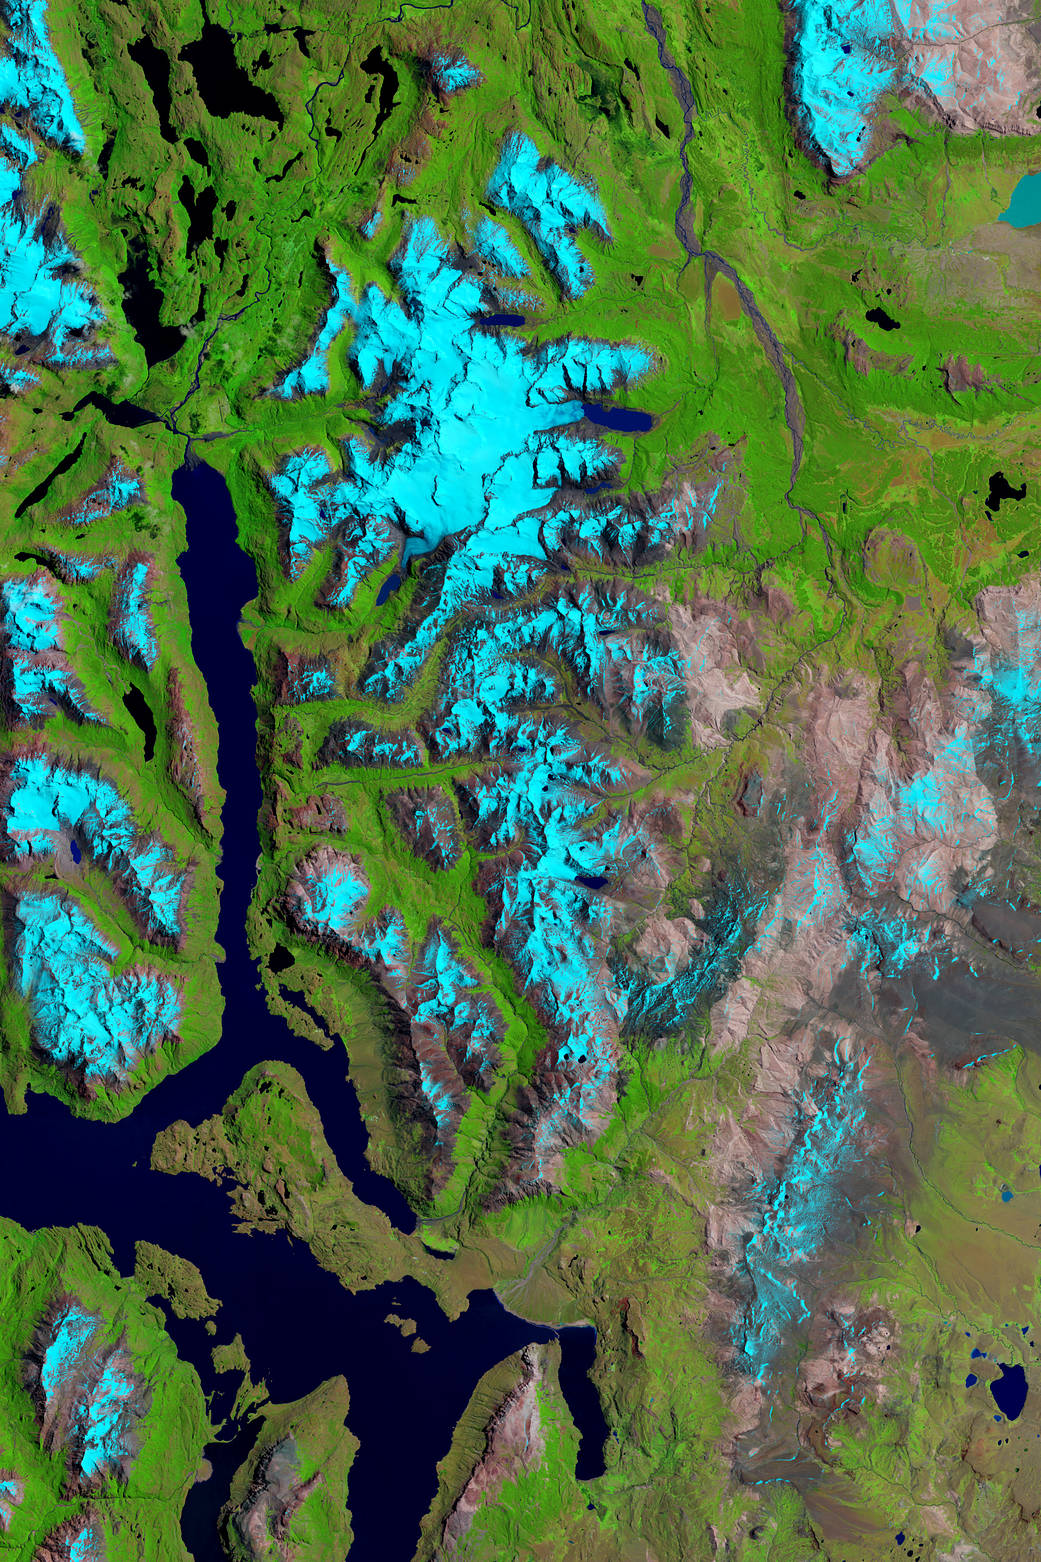 This image, acquired by the Operational Land Imager (OLI) on Landsat 8, shows the glaciers of Sierra de Sangra on Jan. 14, 2015.